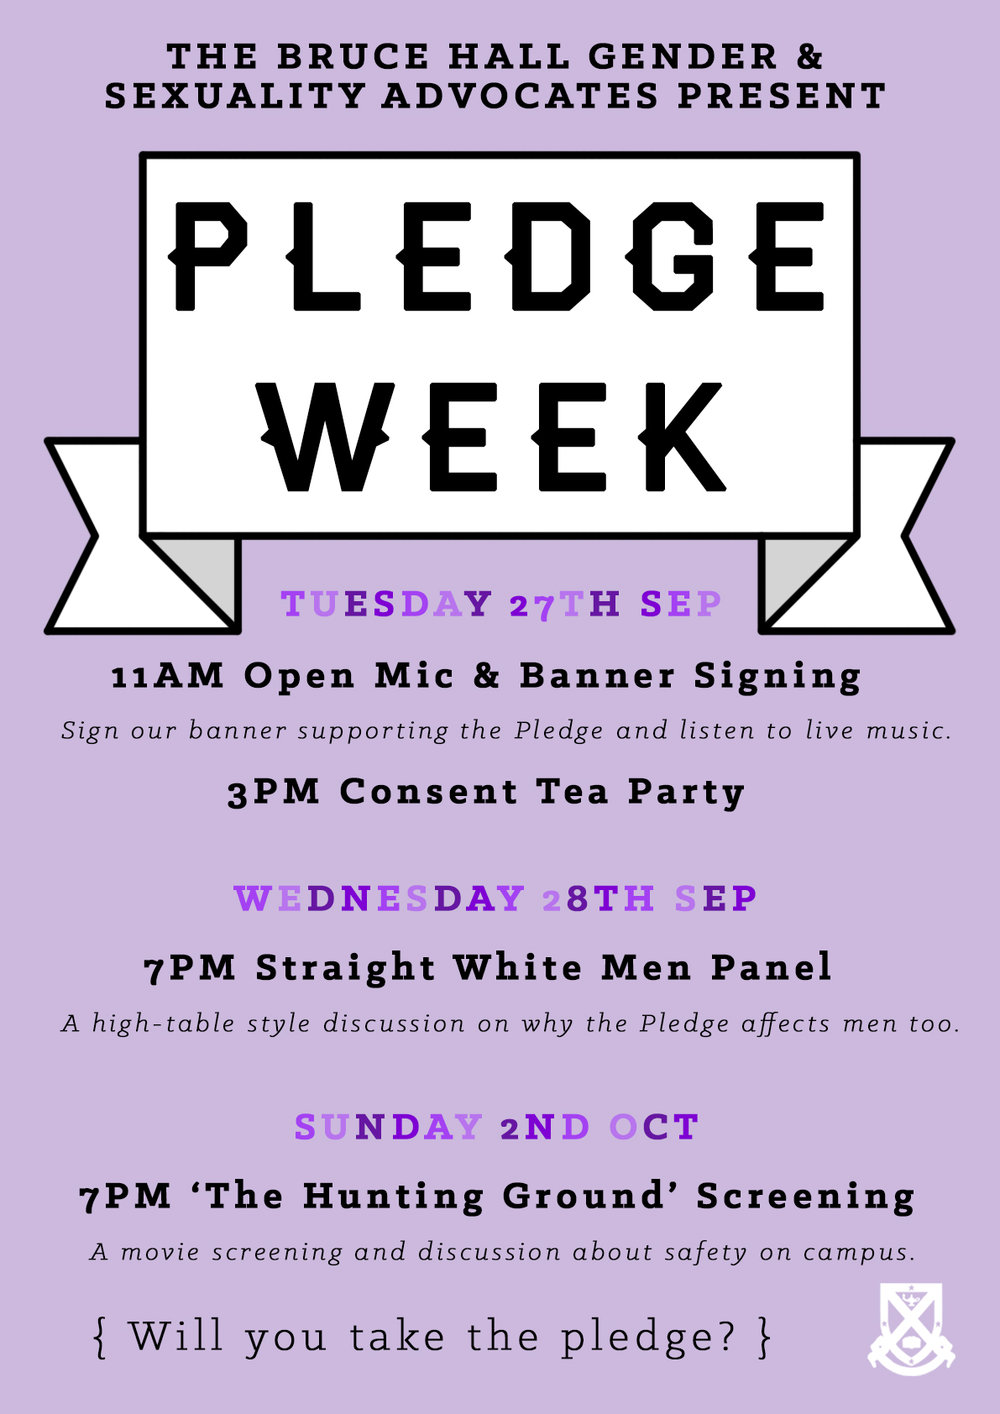 pledge-week2.jpg